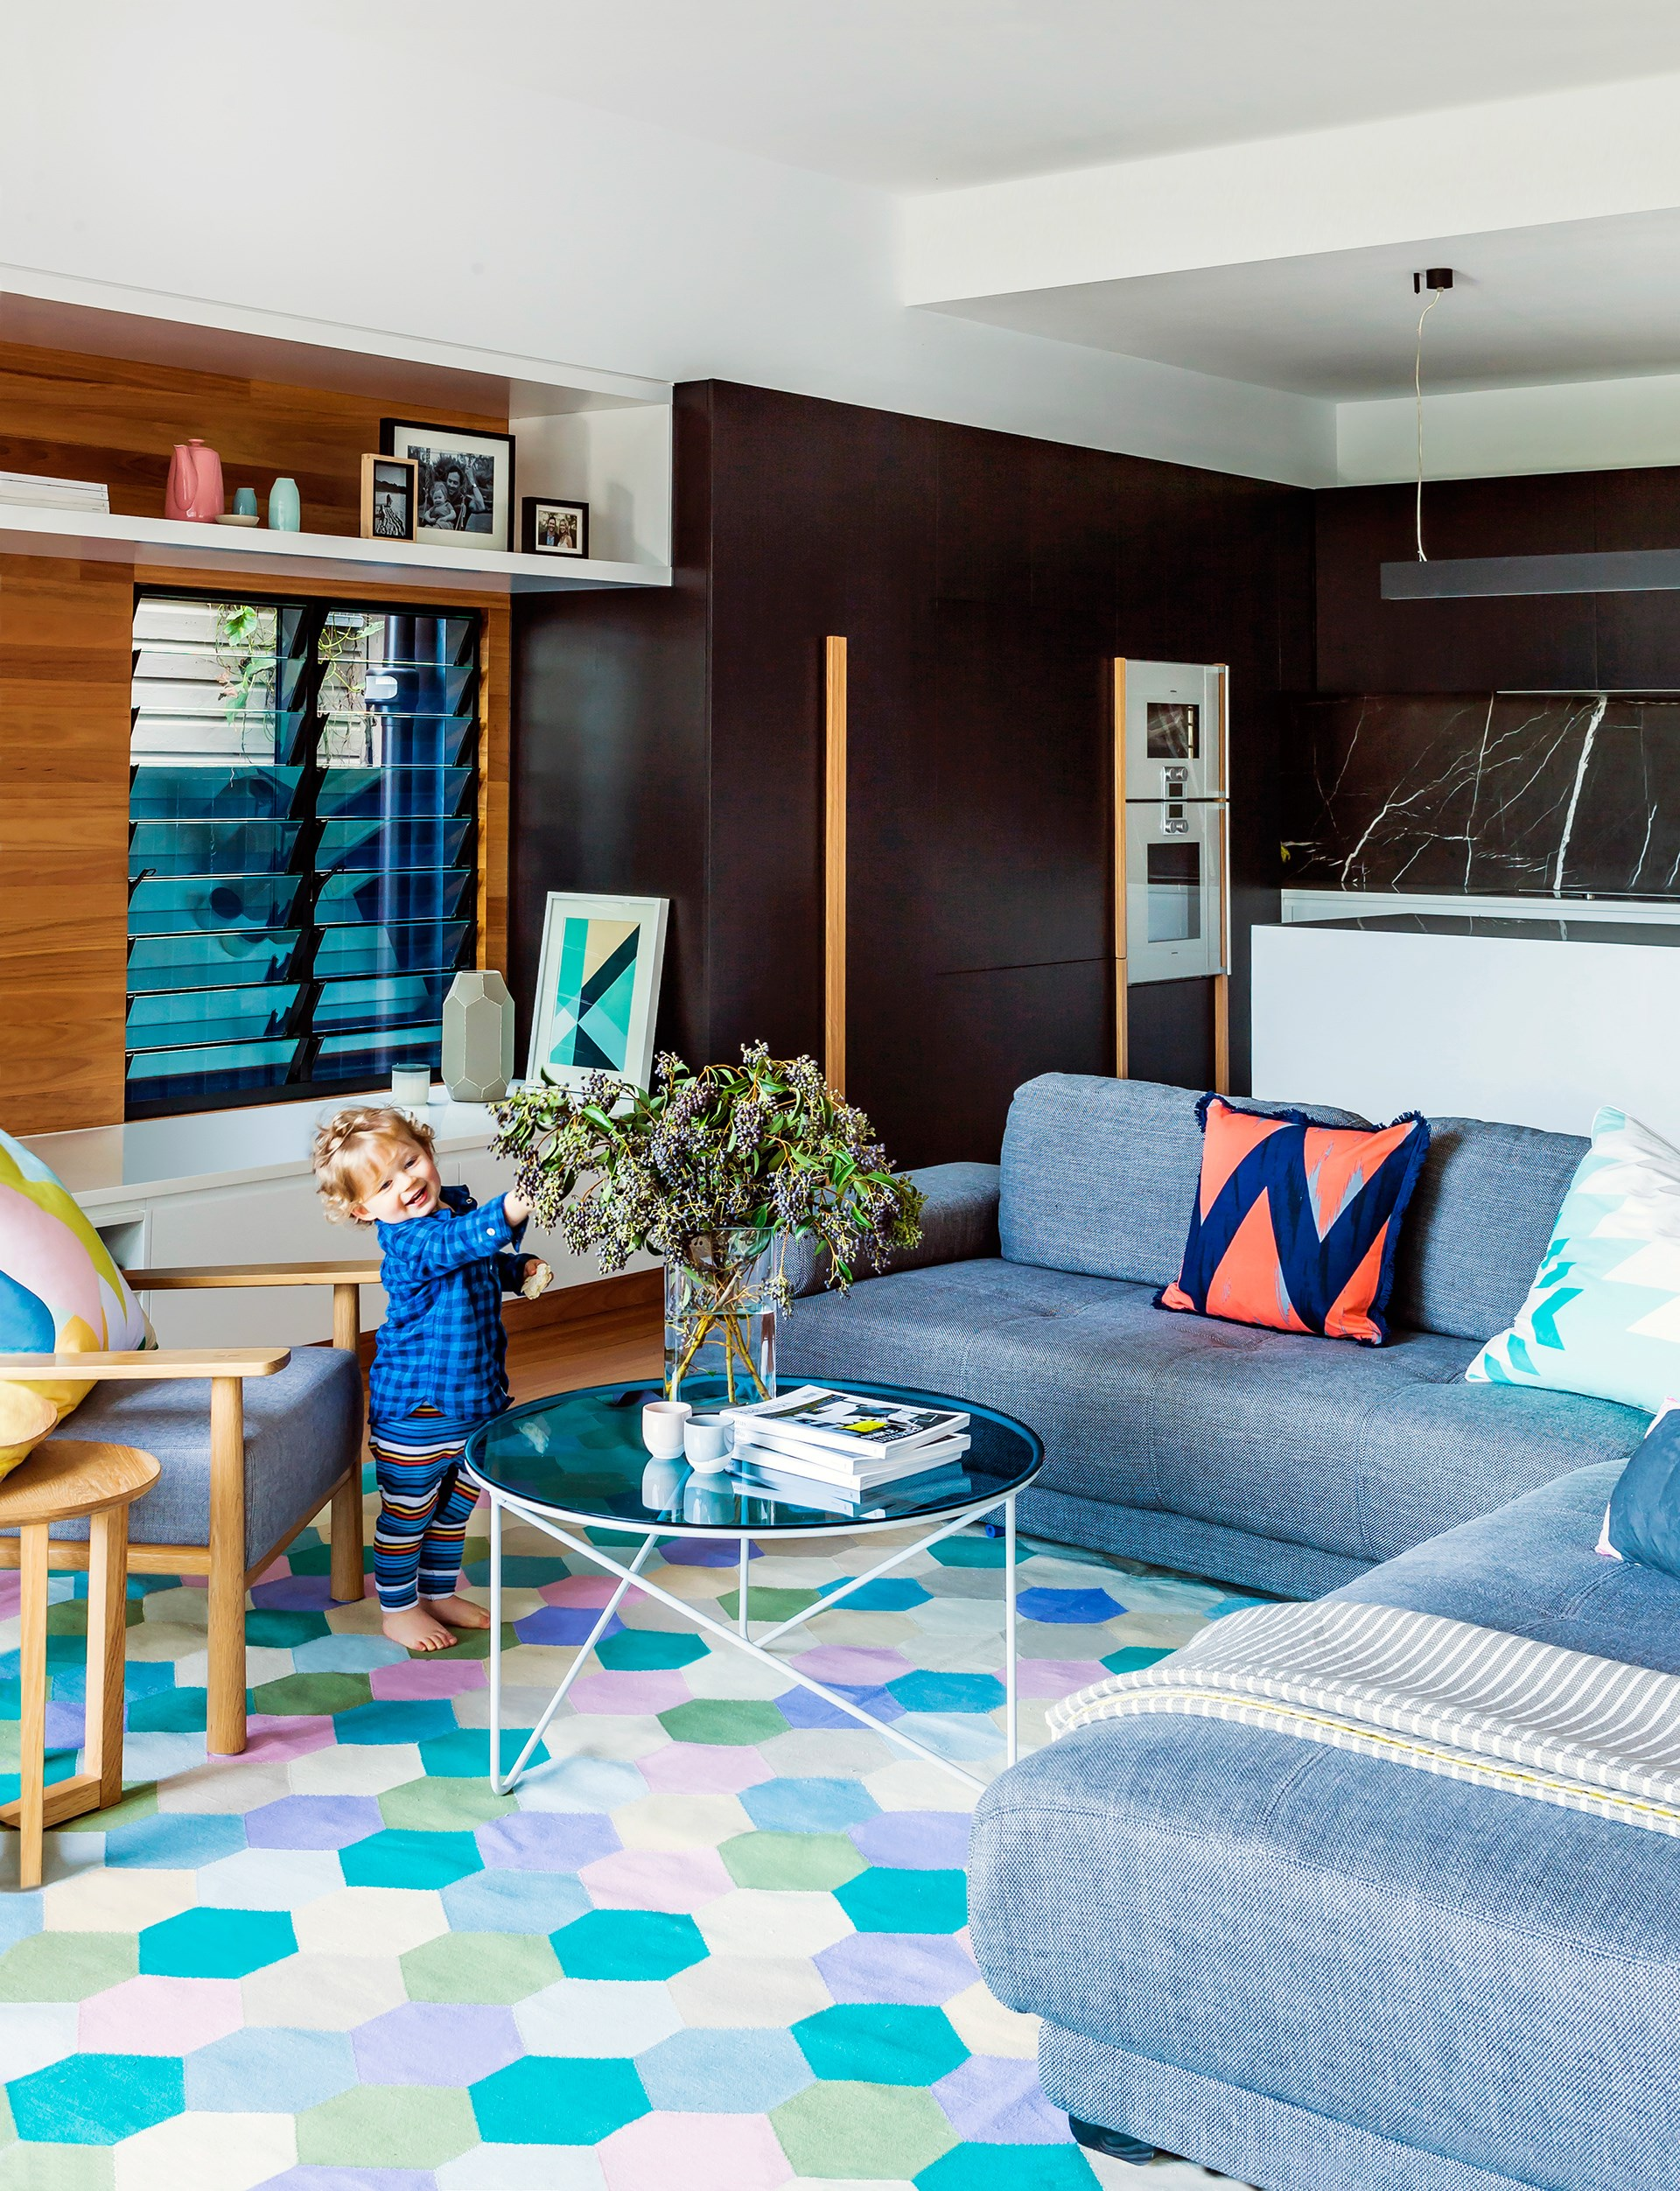 "This bright, breezy and colourful home is a delight for any young explorer. Take a tour of this [stylish weatherboard cottage renovation](http://www.homestolove.com.au/gallery-kims-weatherboard-home-renovation-1673/?utm_campaign=supplier/|target=""_blank""). Photo: Maree Homer / *Australian House & Garden*"